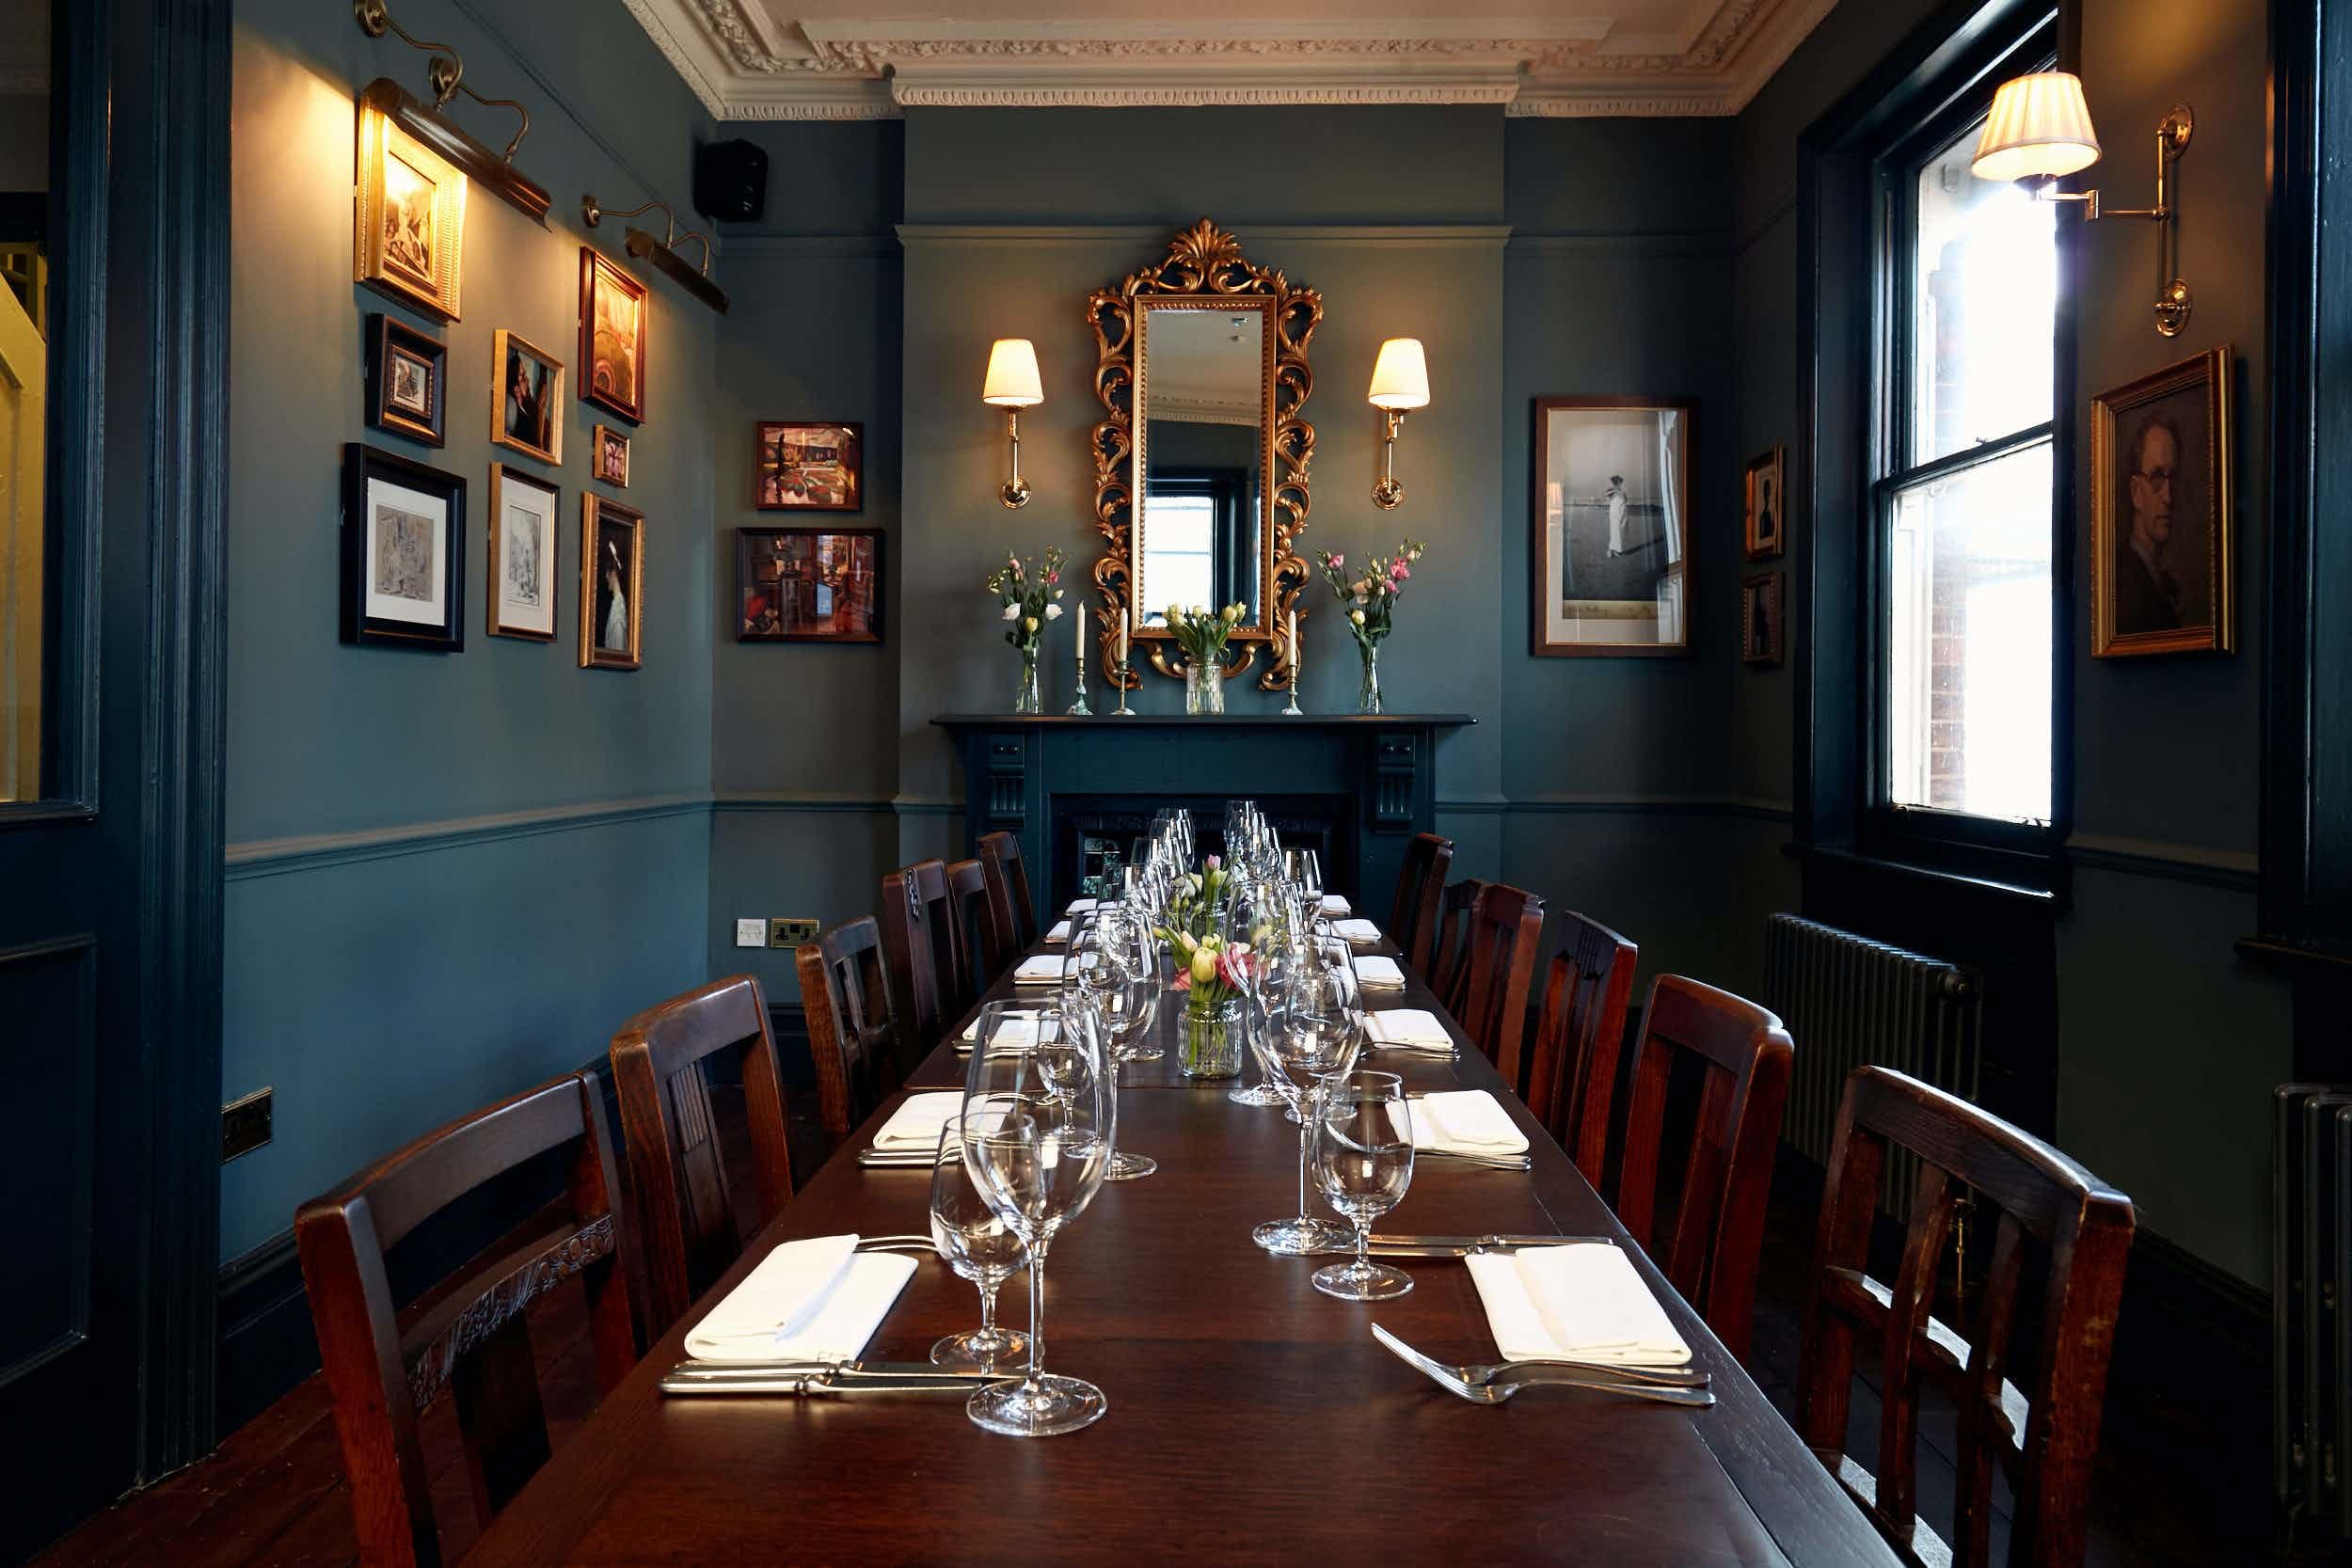 The Morrell Room, The Lady Ottoline